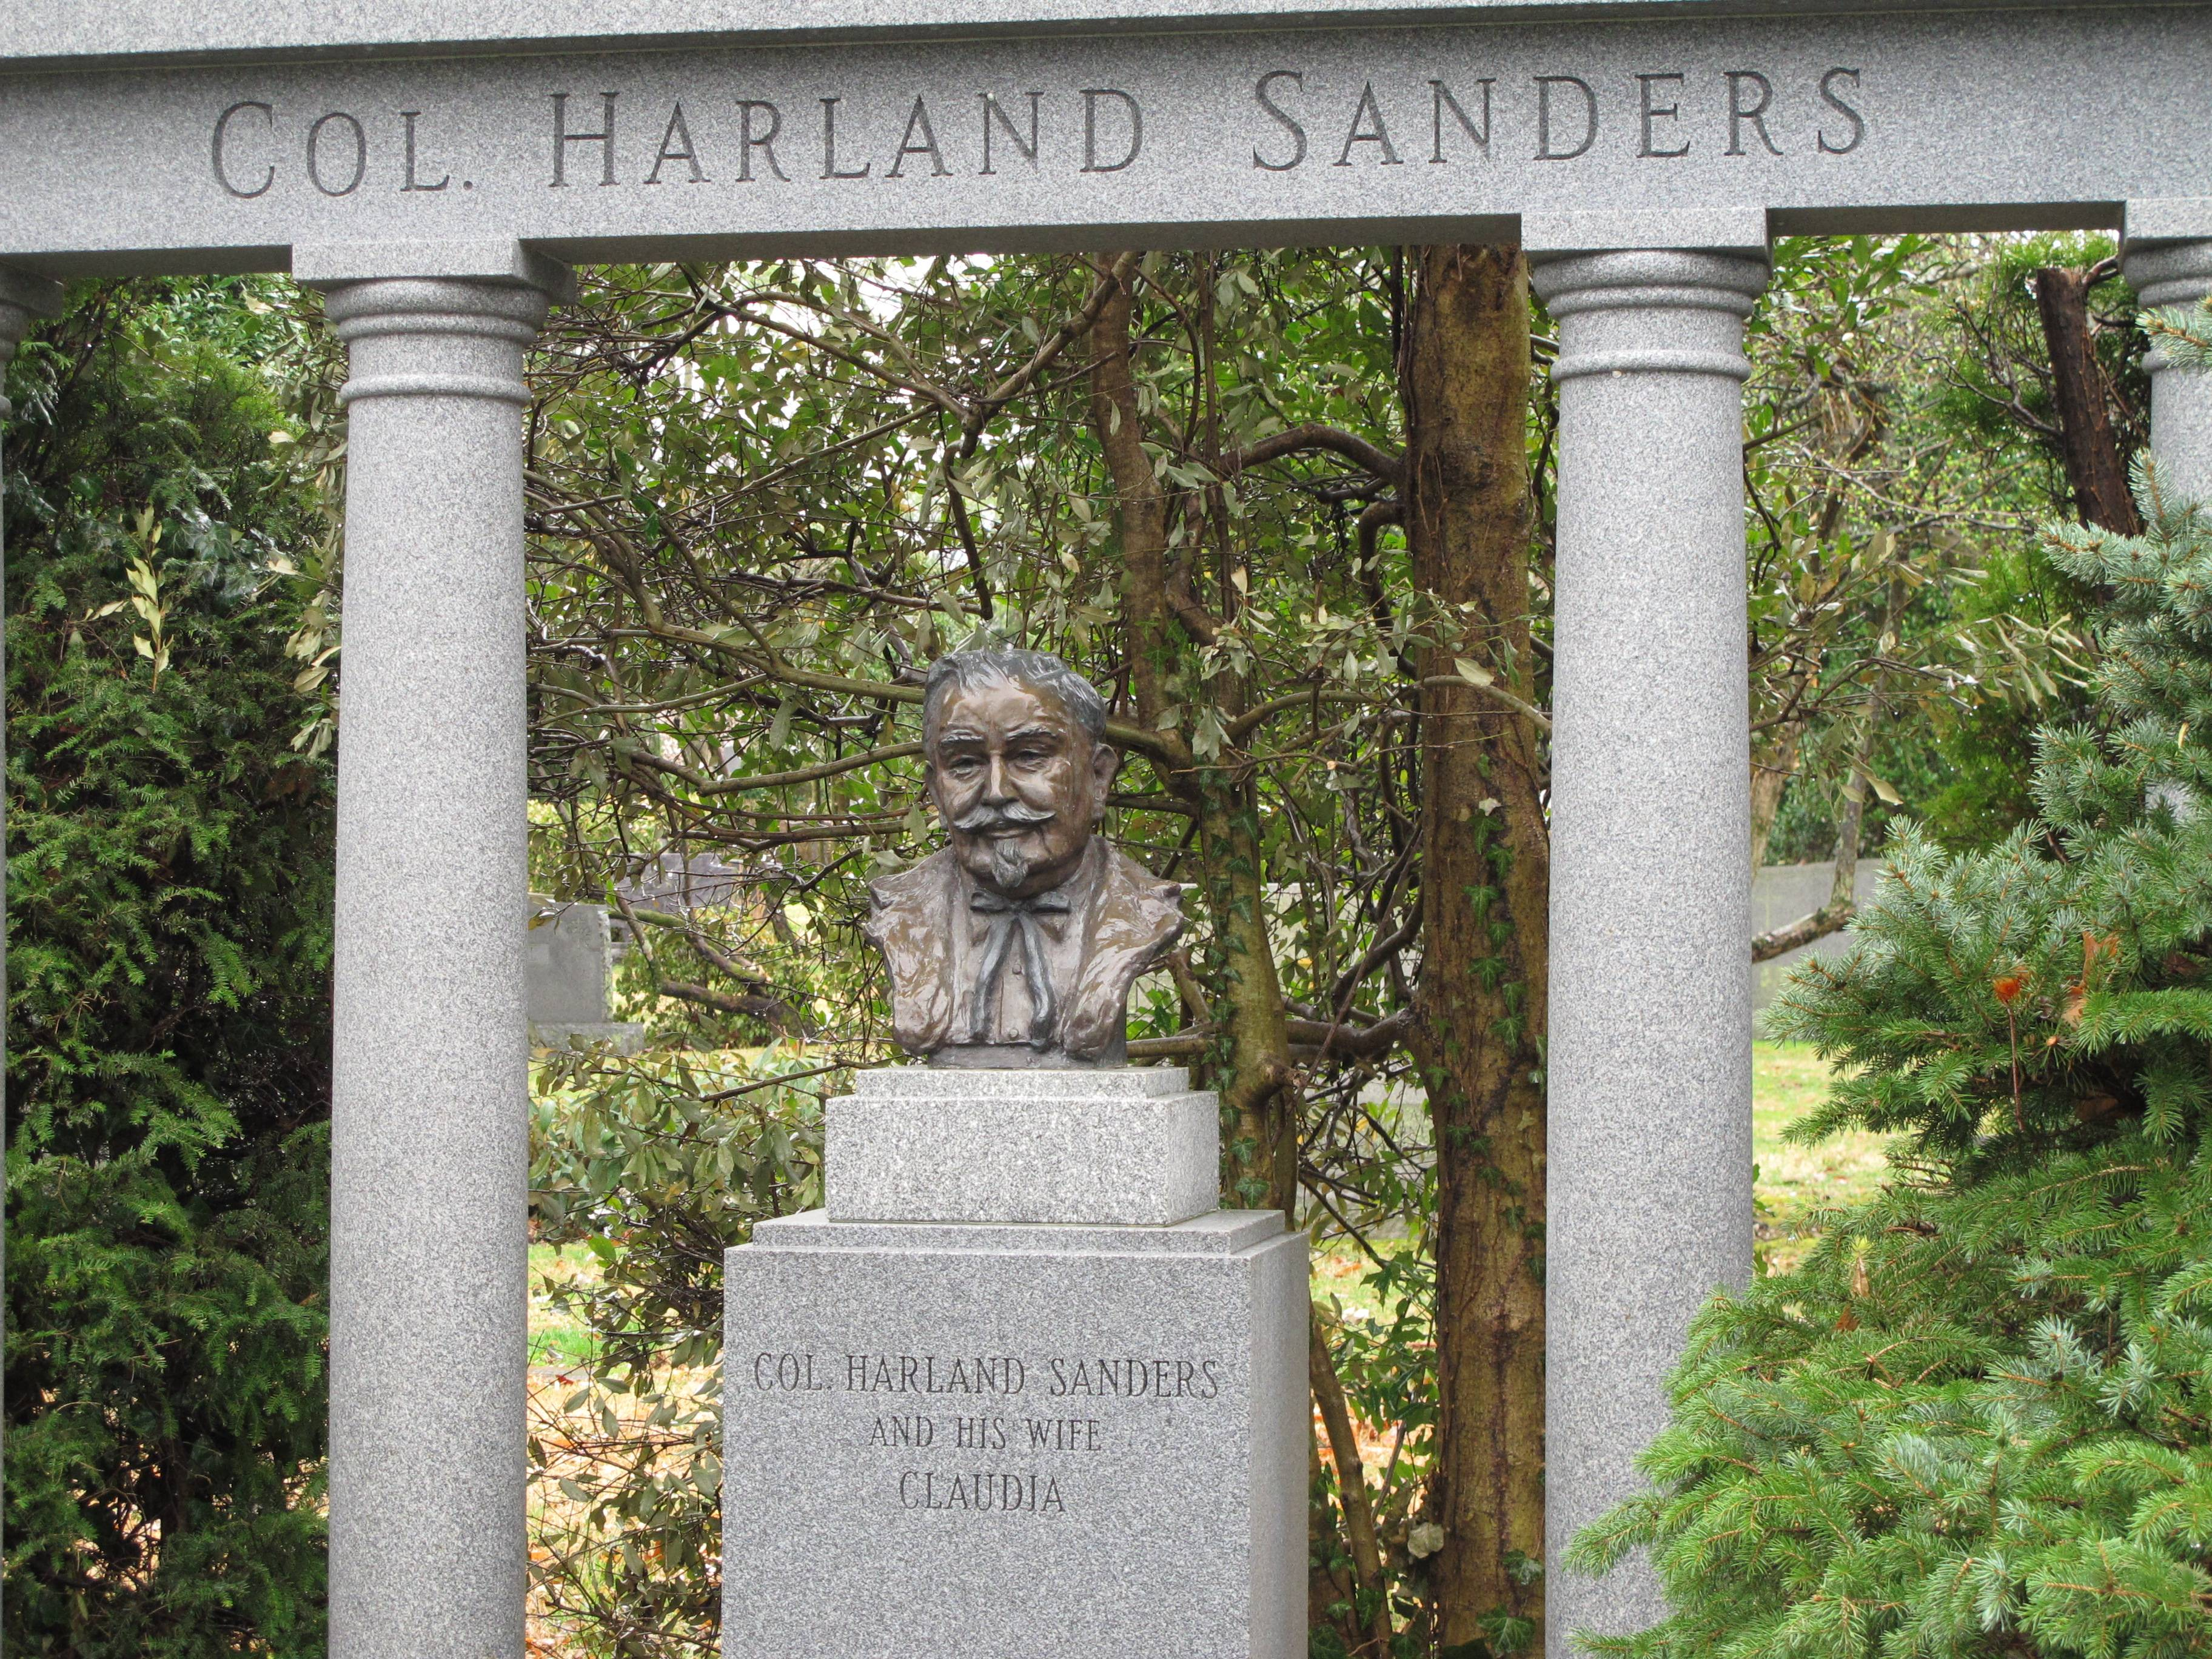 This bust of Colonel Harland Sanders marks the KFC founder's grave at Cave Hill Cemetery in Louisville, Ky. The nearly 300-acre cemetery features ornate marble and granite monuments and is shaded by a wide variety of trees that loom over the rolling grounds.